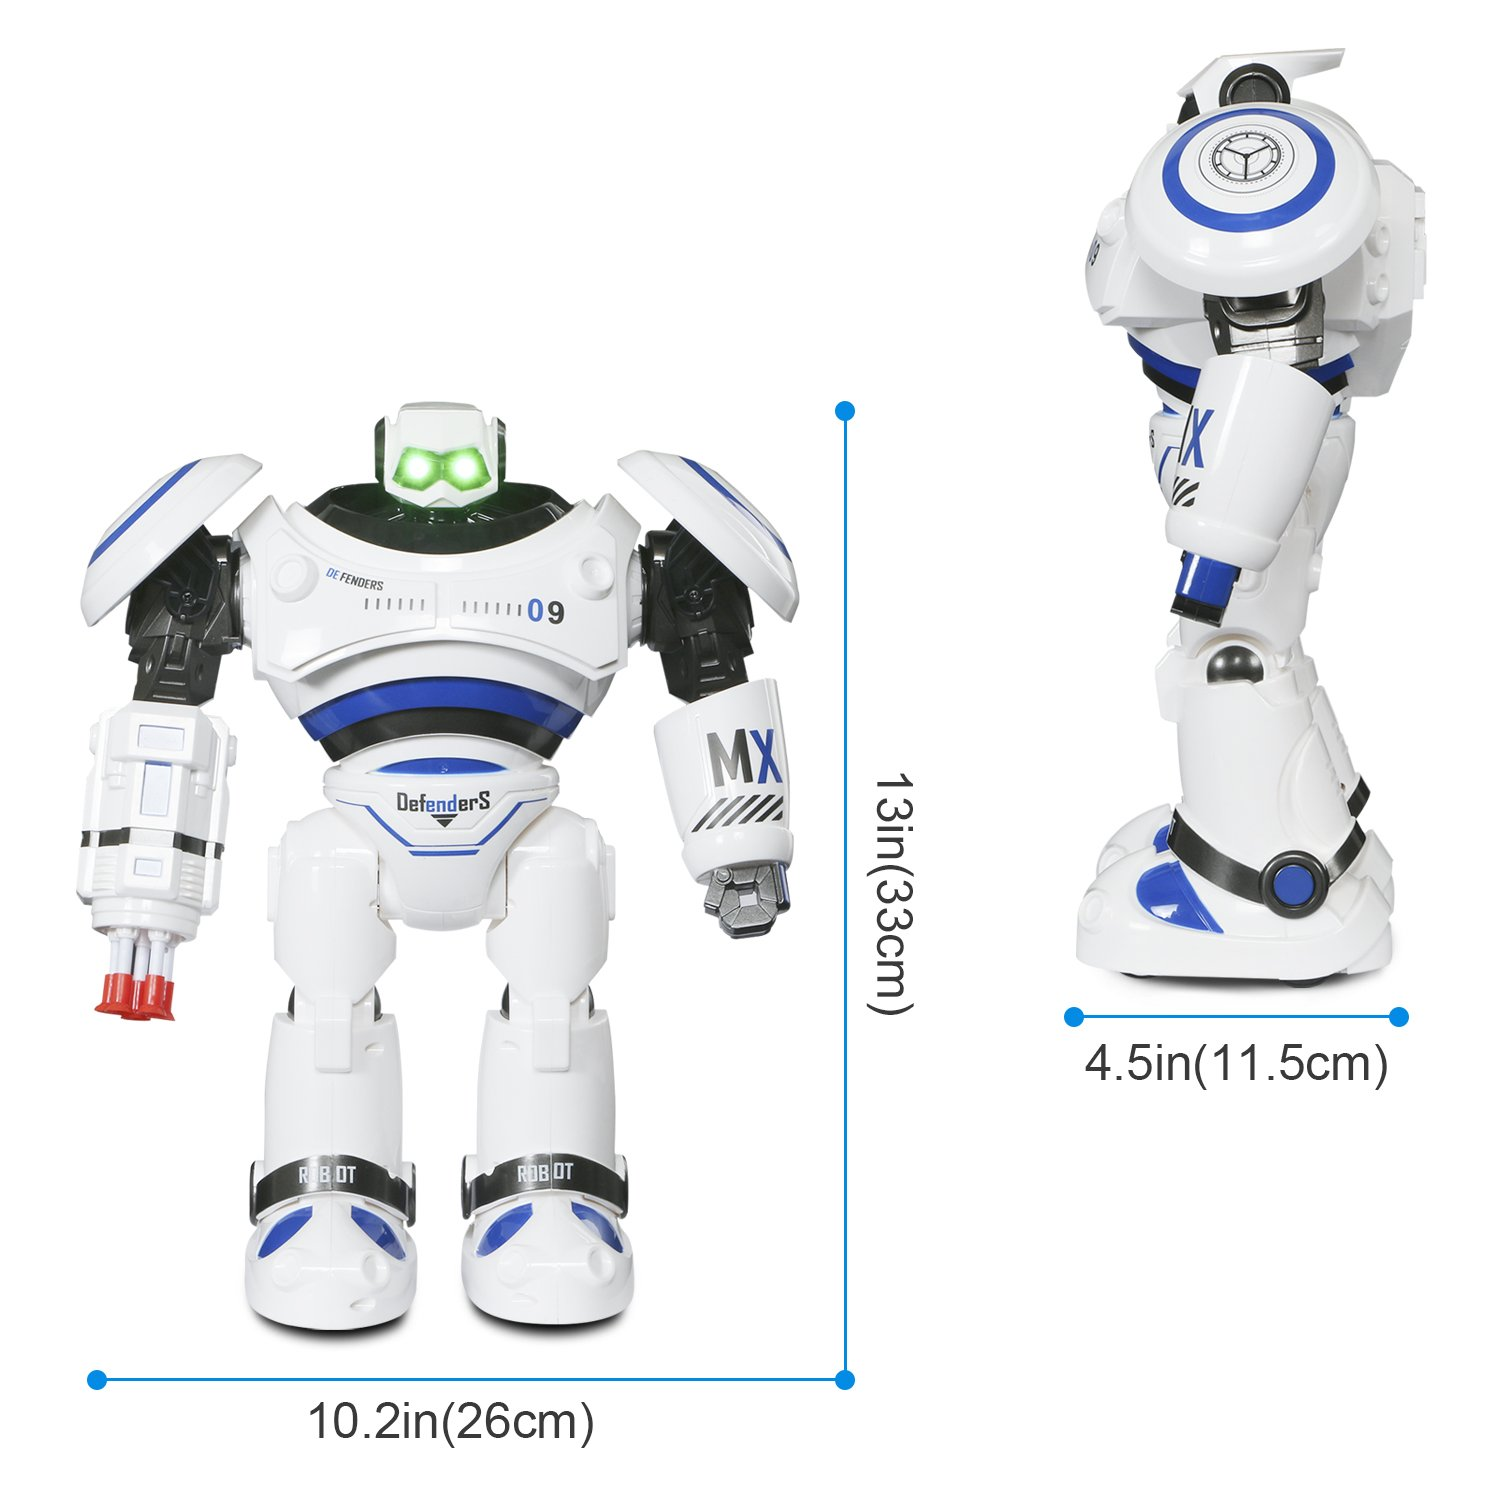 SGILE RC Robot Toy, Programmable Intelligent Walk Sing Dance Robot for Kids Gift Present, White by SGILE (Image #5)